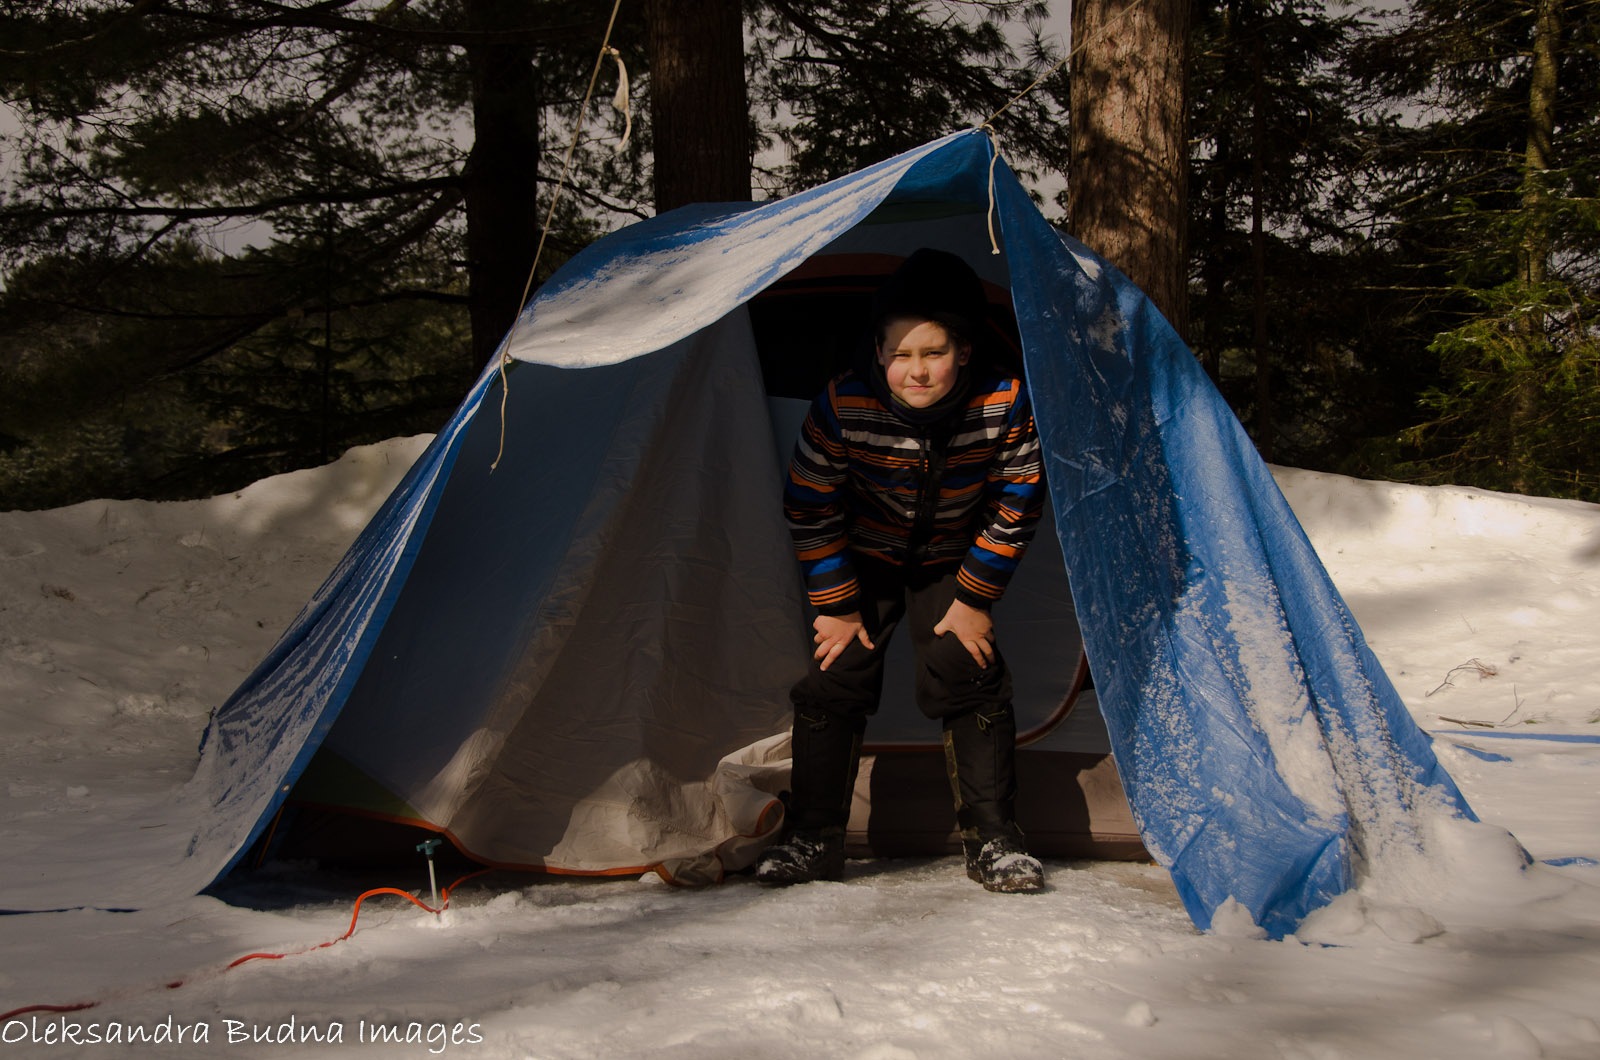 Winter in Algonquin: Camping in a Tent